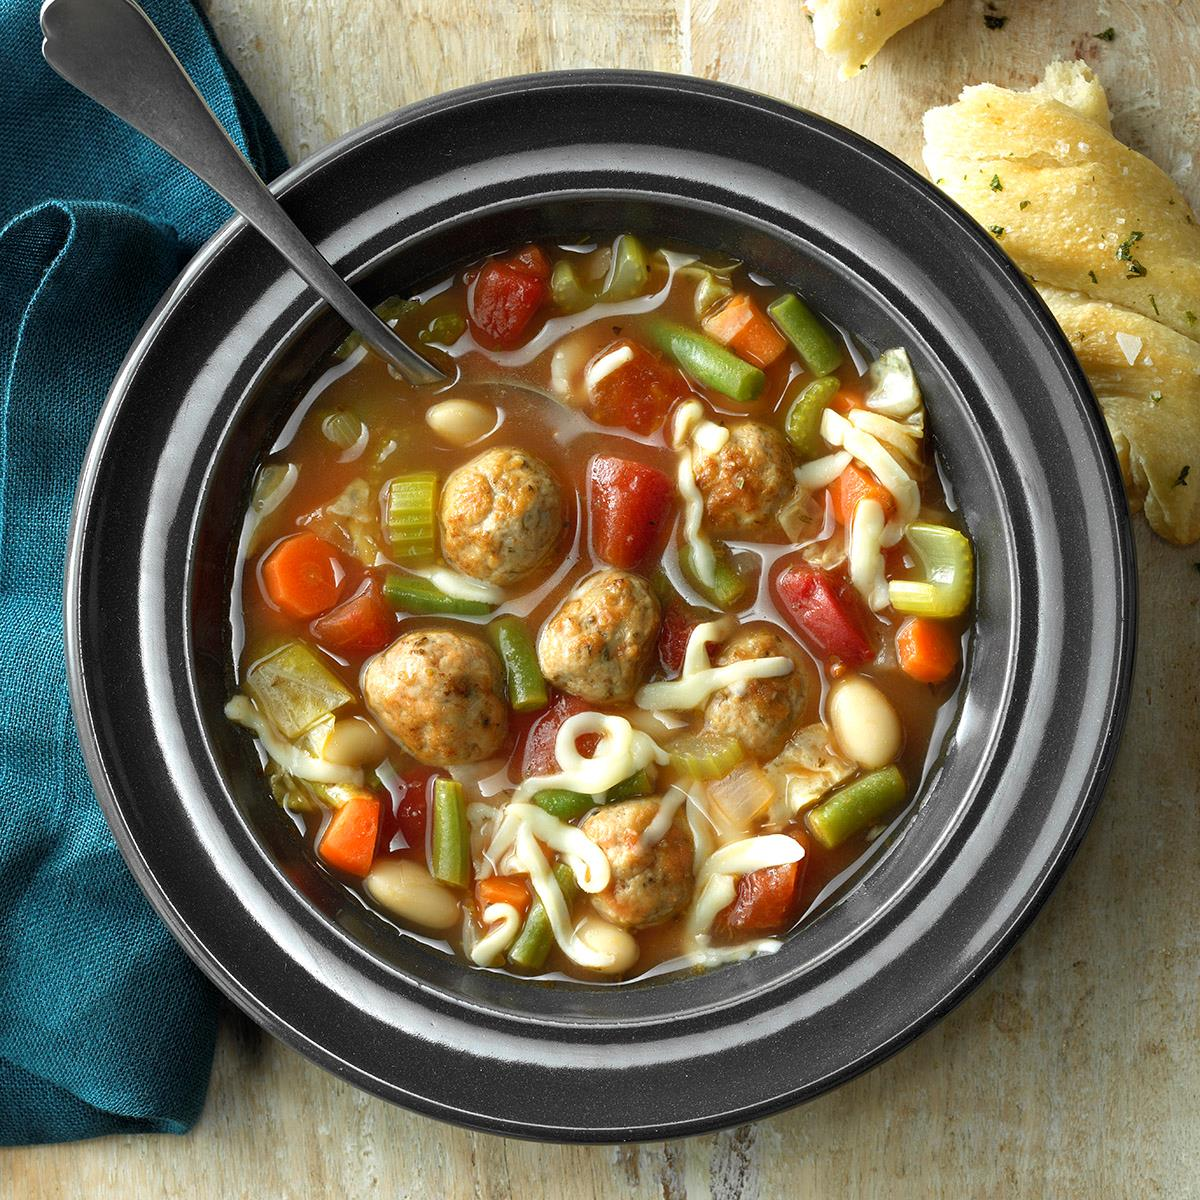 Flavorful Meatball Soup